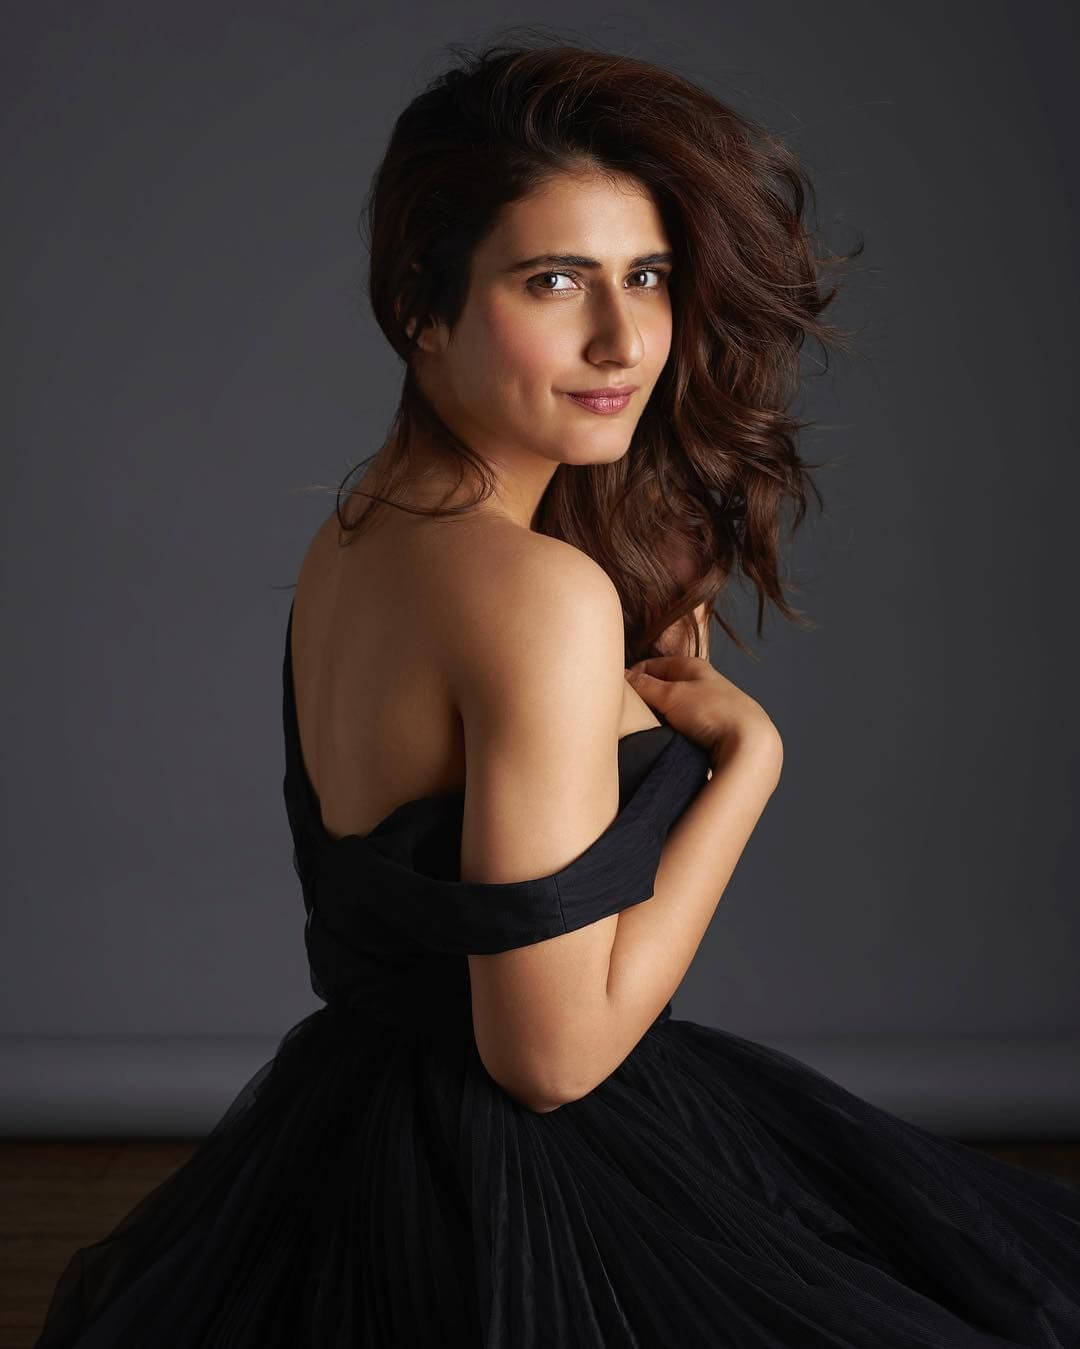 Fatima Sana Shaikh Age, Movies, Height, Biography, Husband, Image(photos), Parents, Religion, Birthday, Net Worth, Education, News, Instagram, Wiki, Facebook, Imdb, Twitter (41)